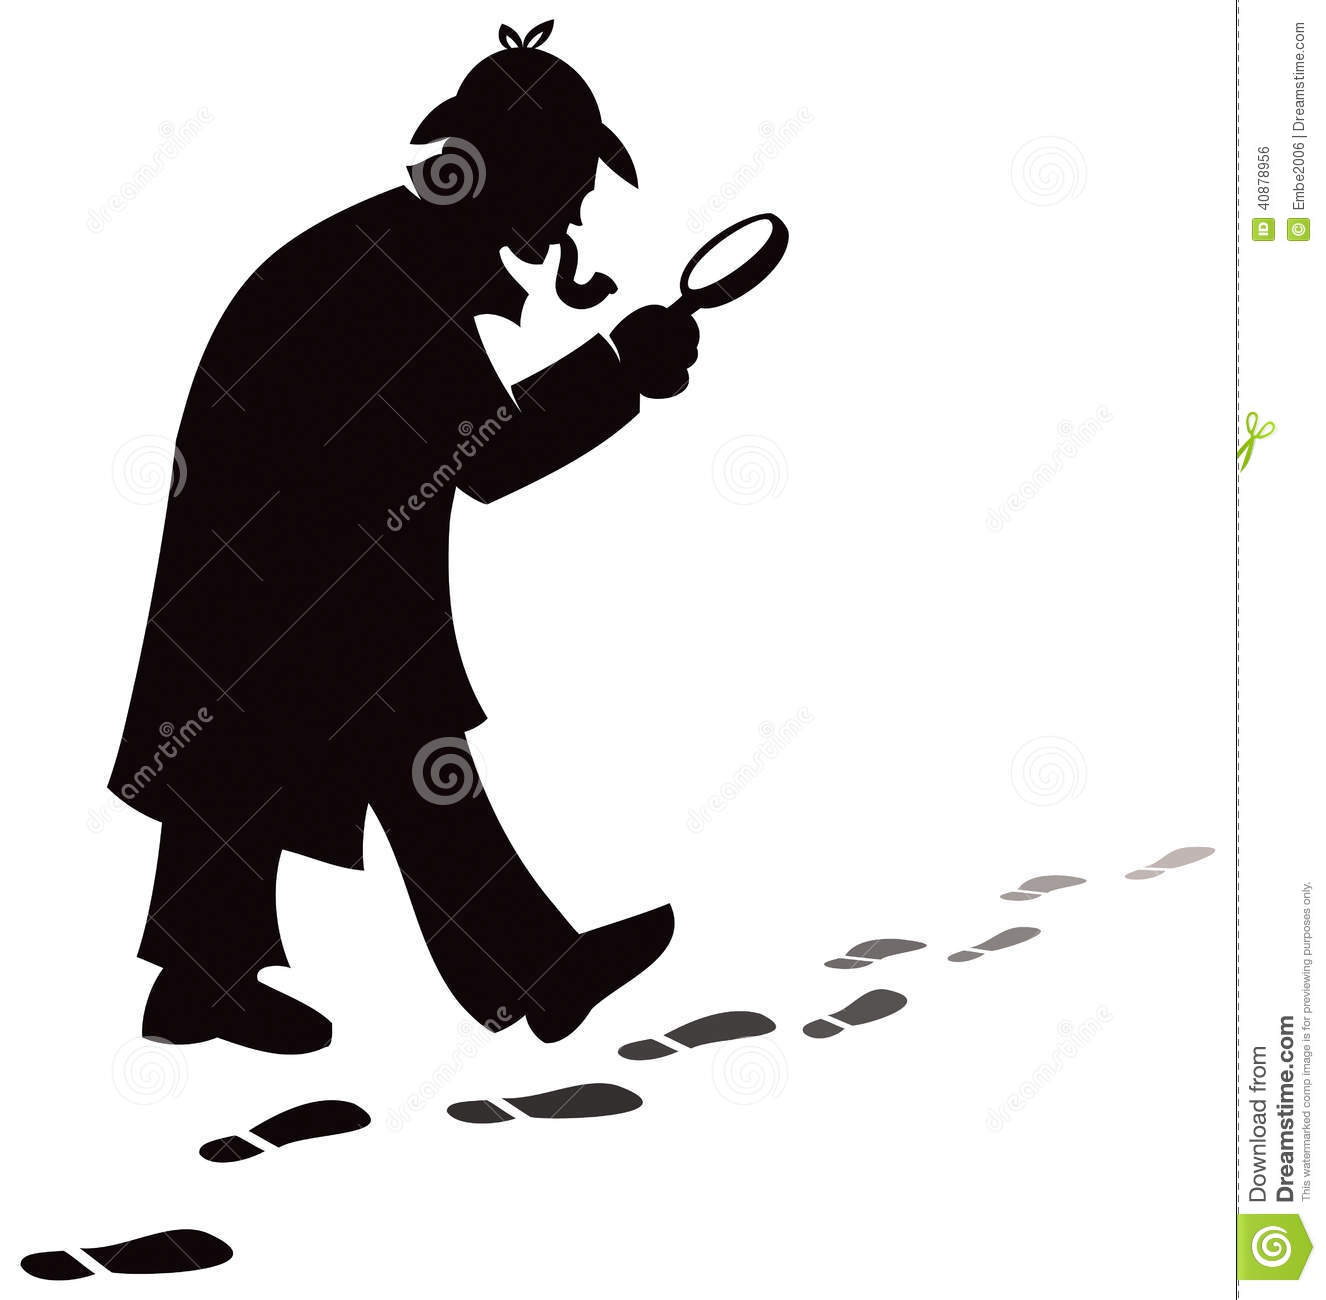 detective investigates and searches for footprints at a crime scene.